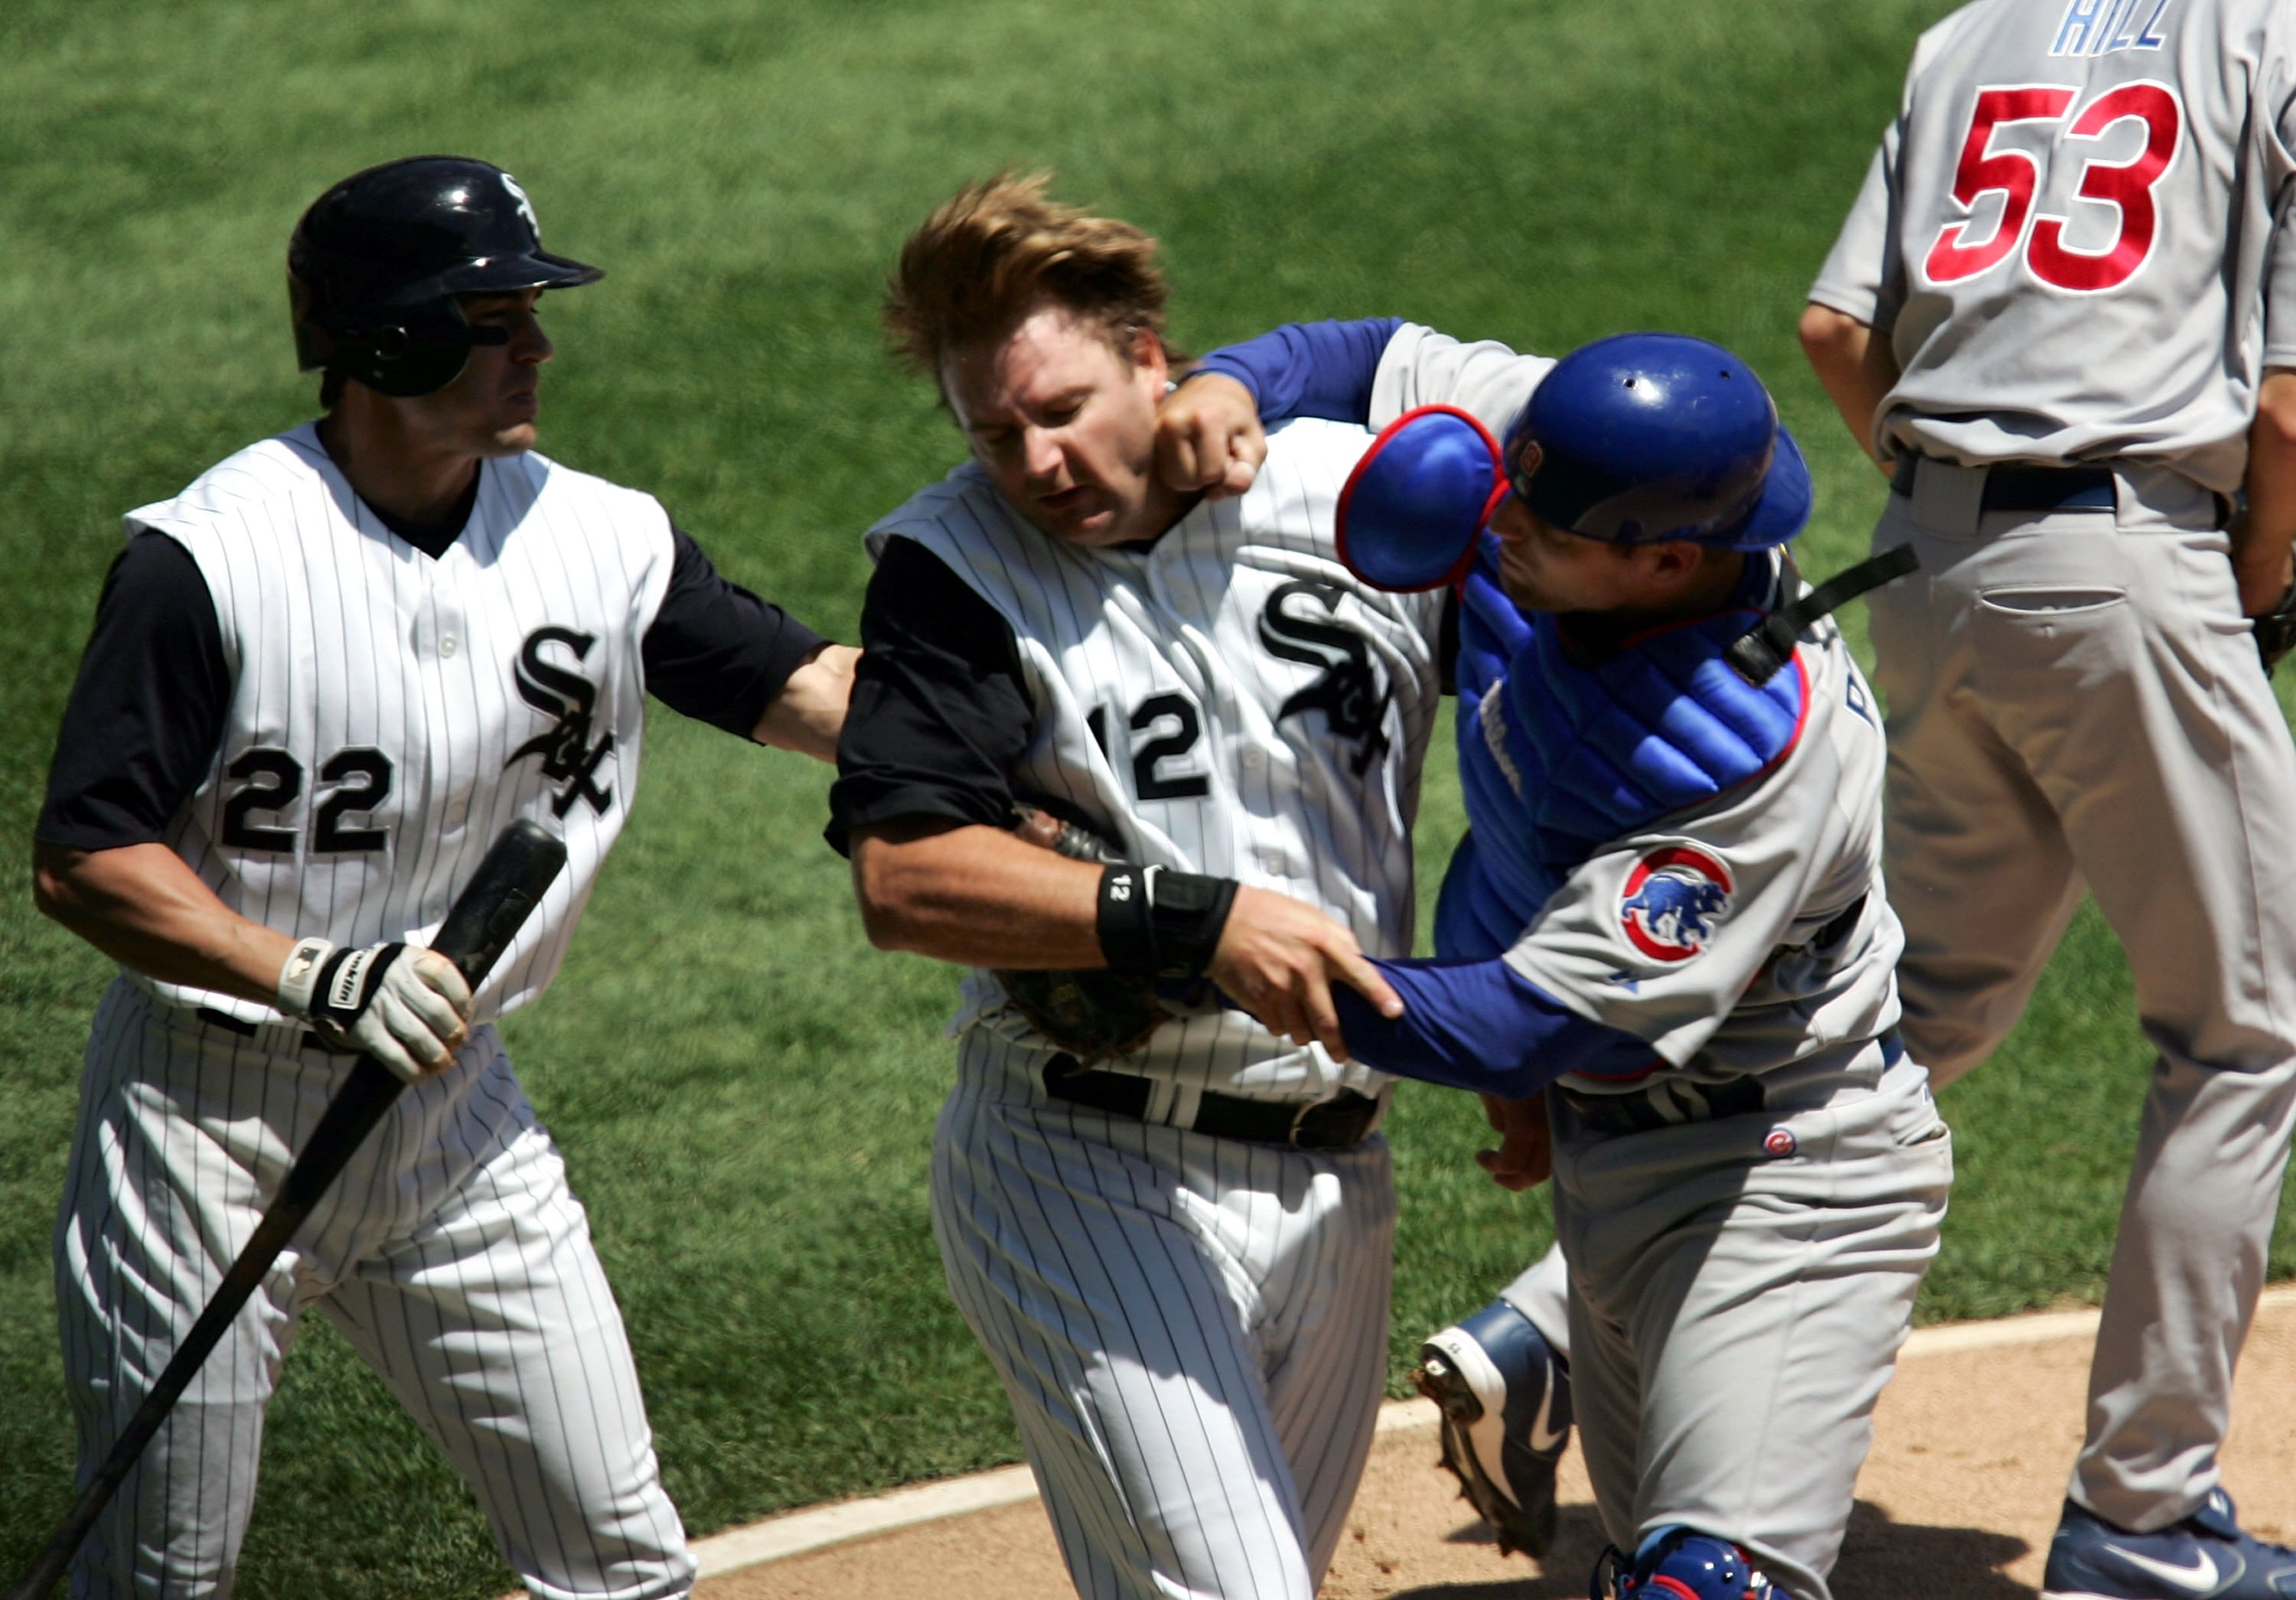 CHICAGO - MAY 20:  Michael Barrett #8 of the Chicago Cubs punches A.J. Pierzynski #12 of the Chicago White Sox after a second inning collision as Scott Podsednik #22 steps in on May 20, 2006 at U.S. Cellular Field in Chicago, Illinois.  (Photo by Jonathan